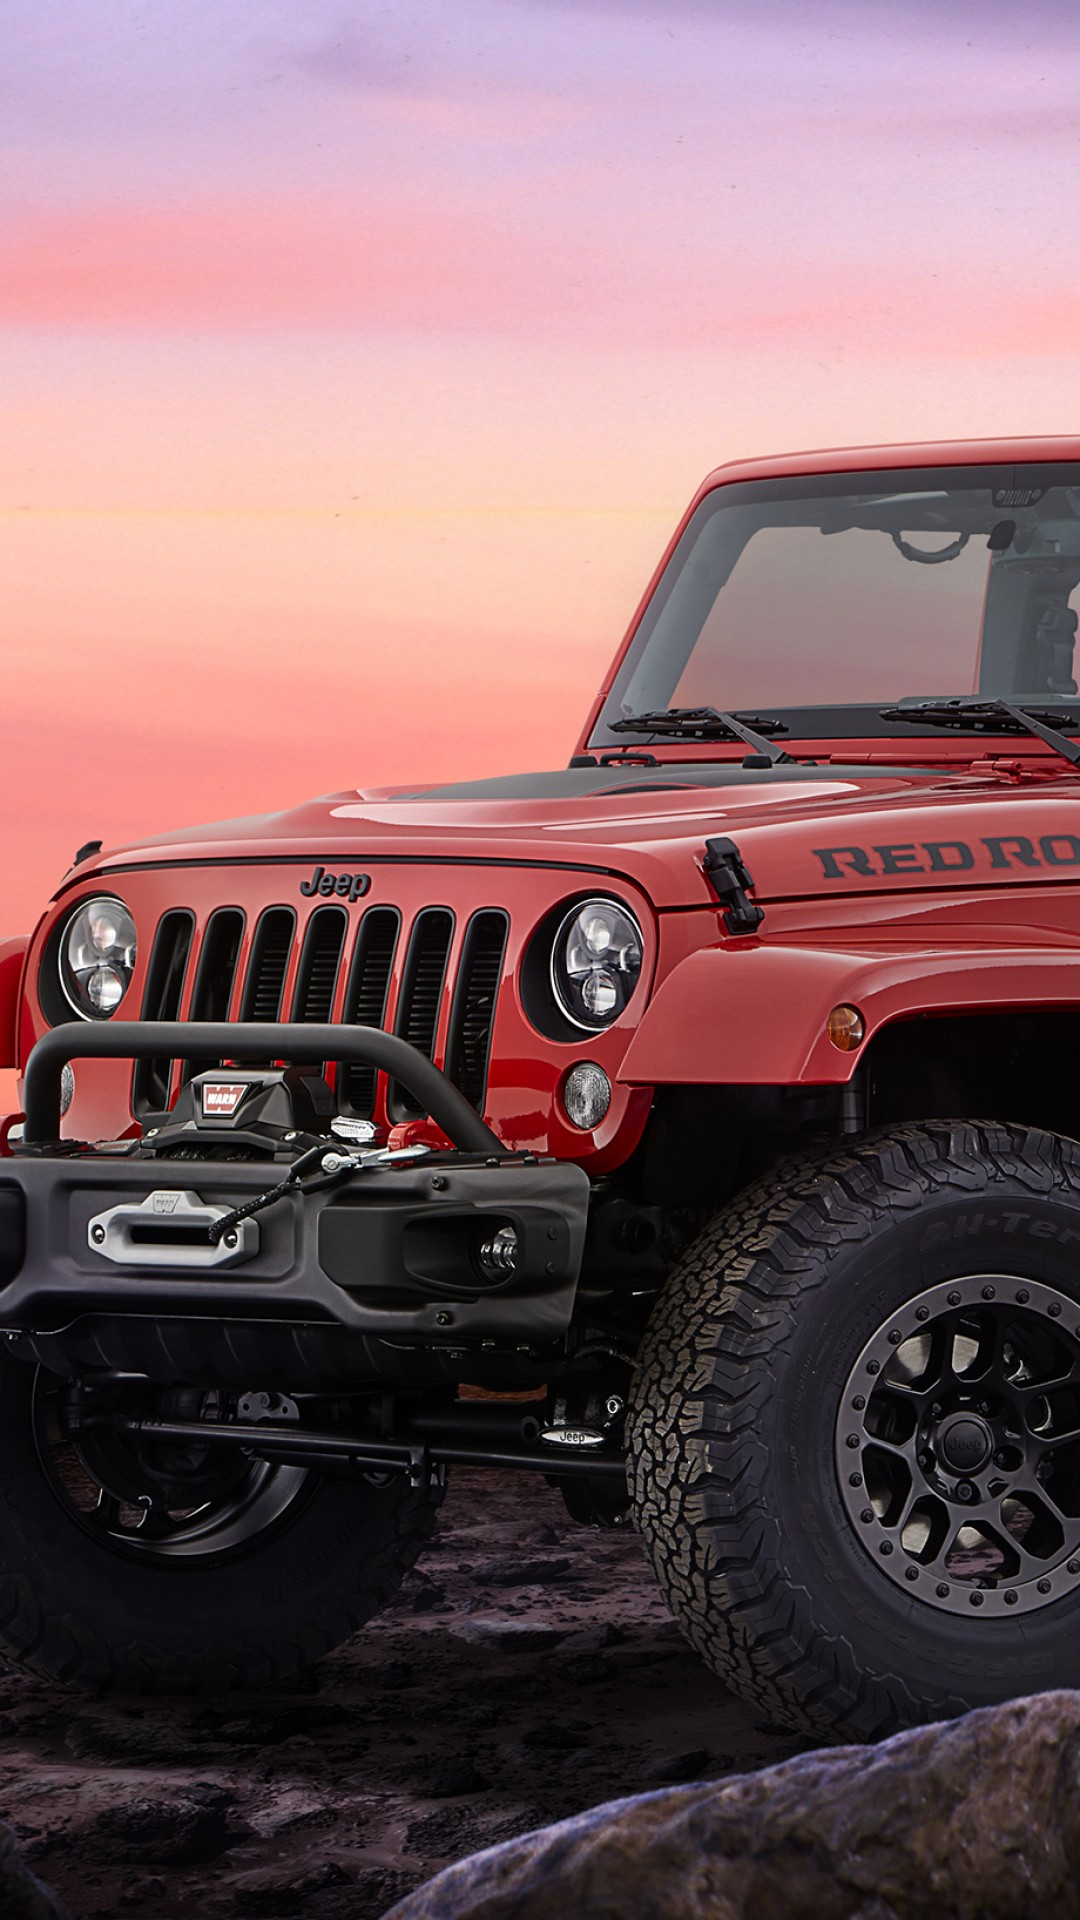 Wallpaper Jeep Red Rock, Jeep Wrangler, SUV, Cars & Bikes